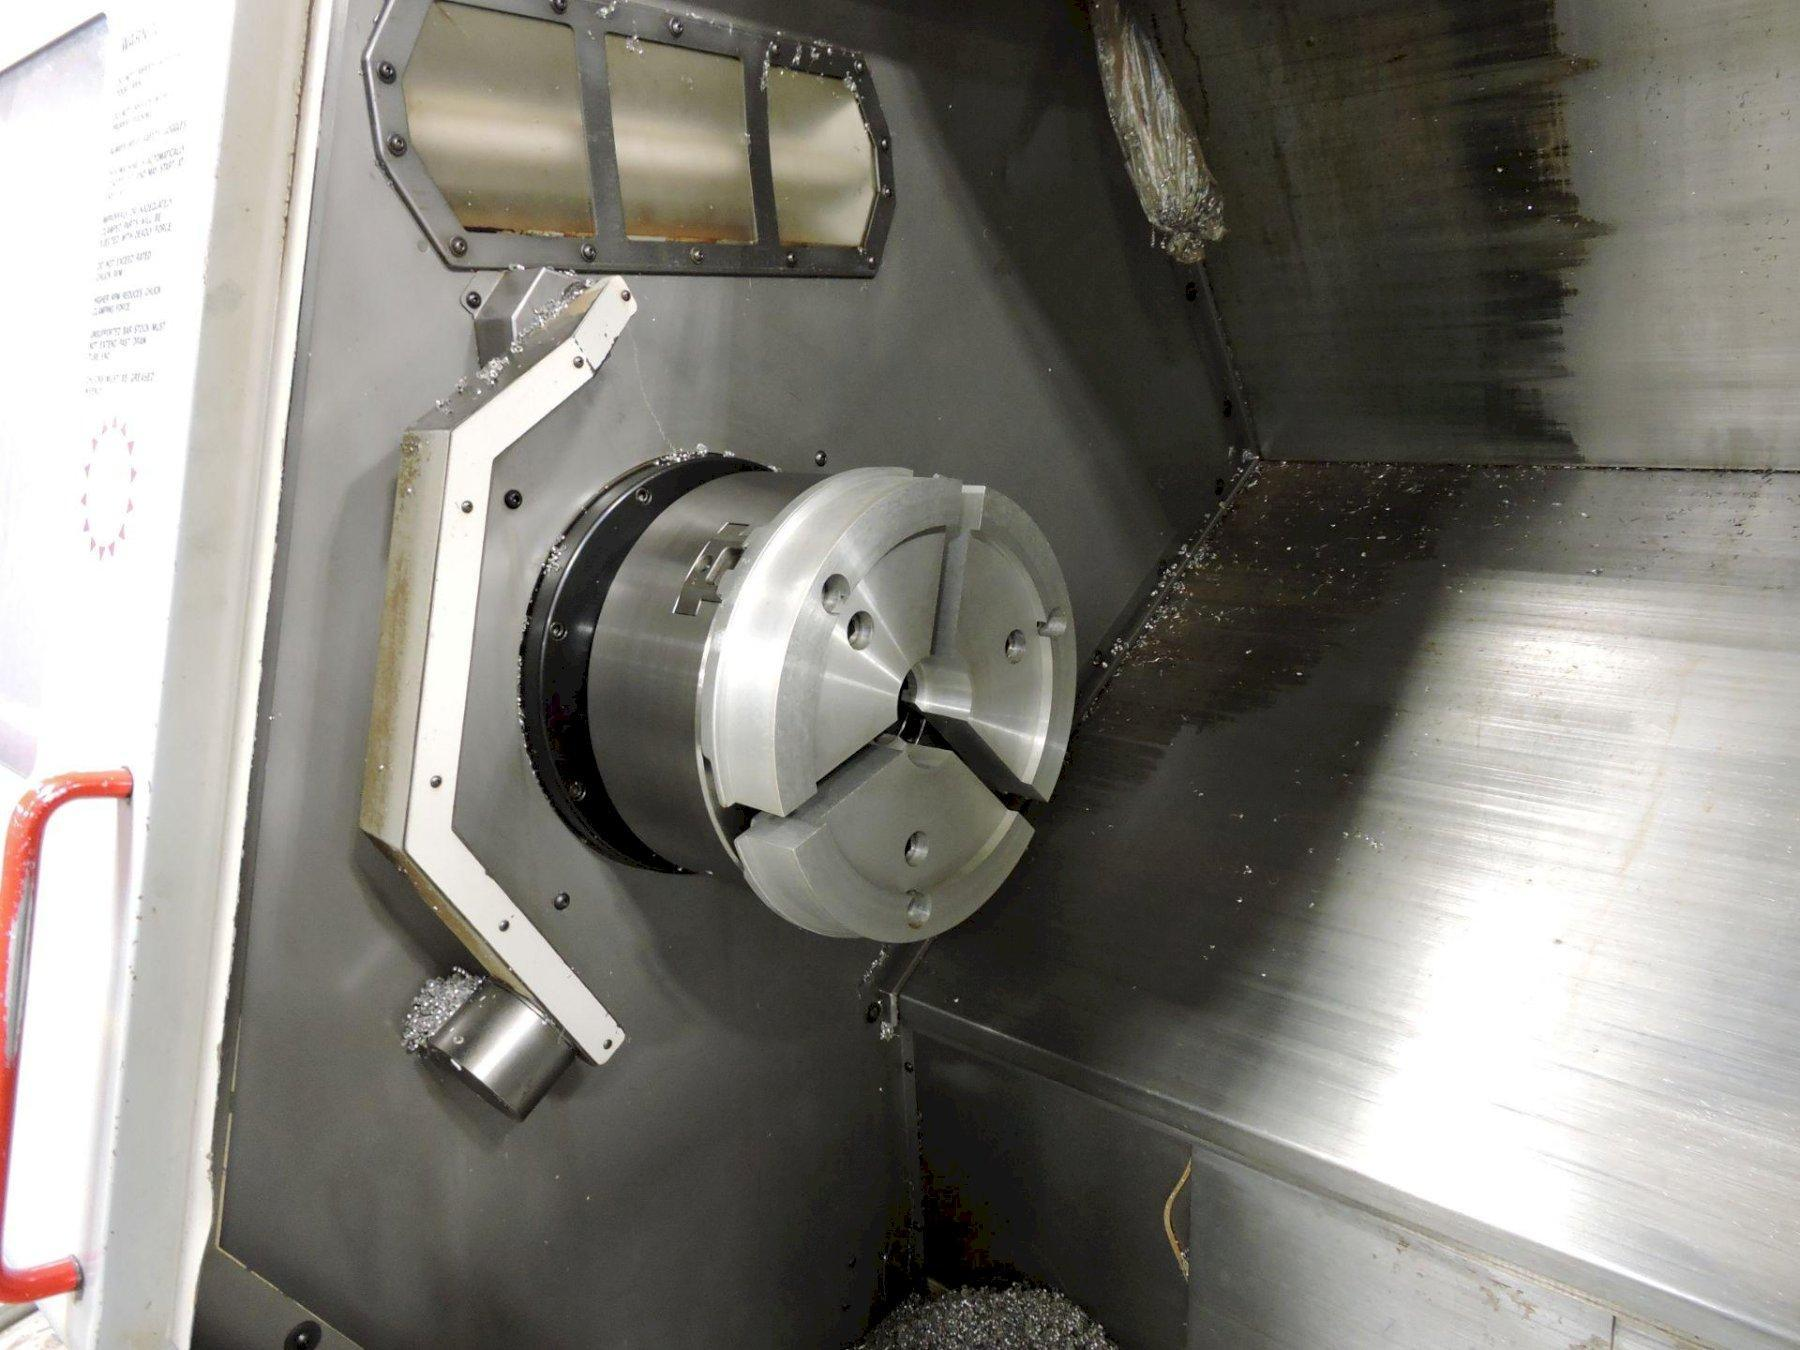 """HAAS SL-40T CNC TURNING CENTER, Haas CNC Control, 40"""" Swing, 15"""" 3-Jaw Chuck, 51"""" Between Centers, 4"""" Bar Capacity,  2400 RPM Spindle, 10-Position Turret, Tailstock, Chip Auger, New 1999."""